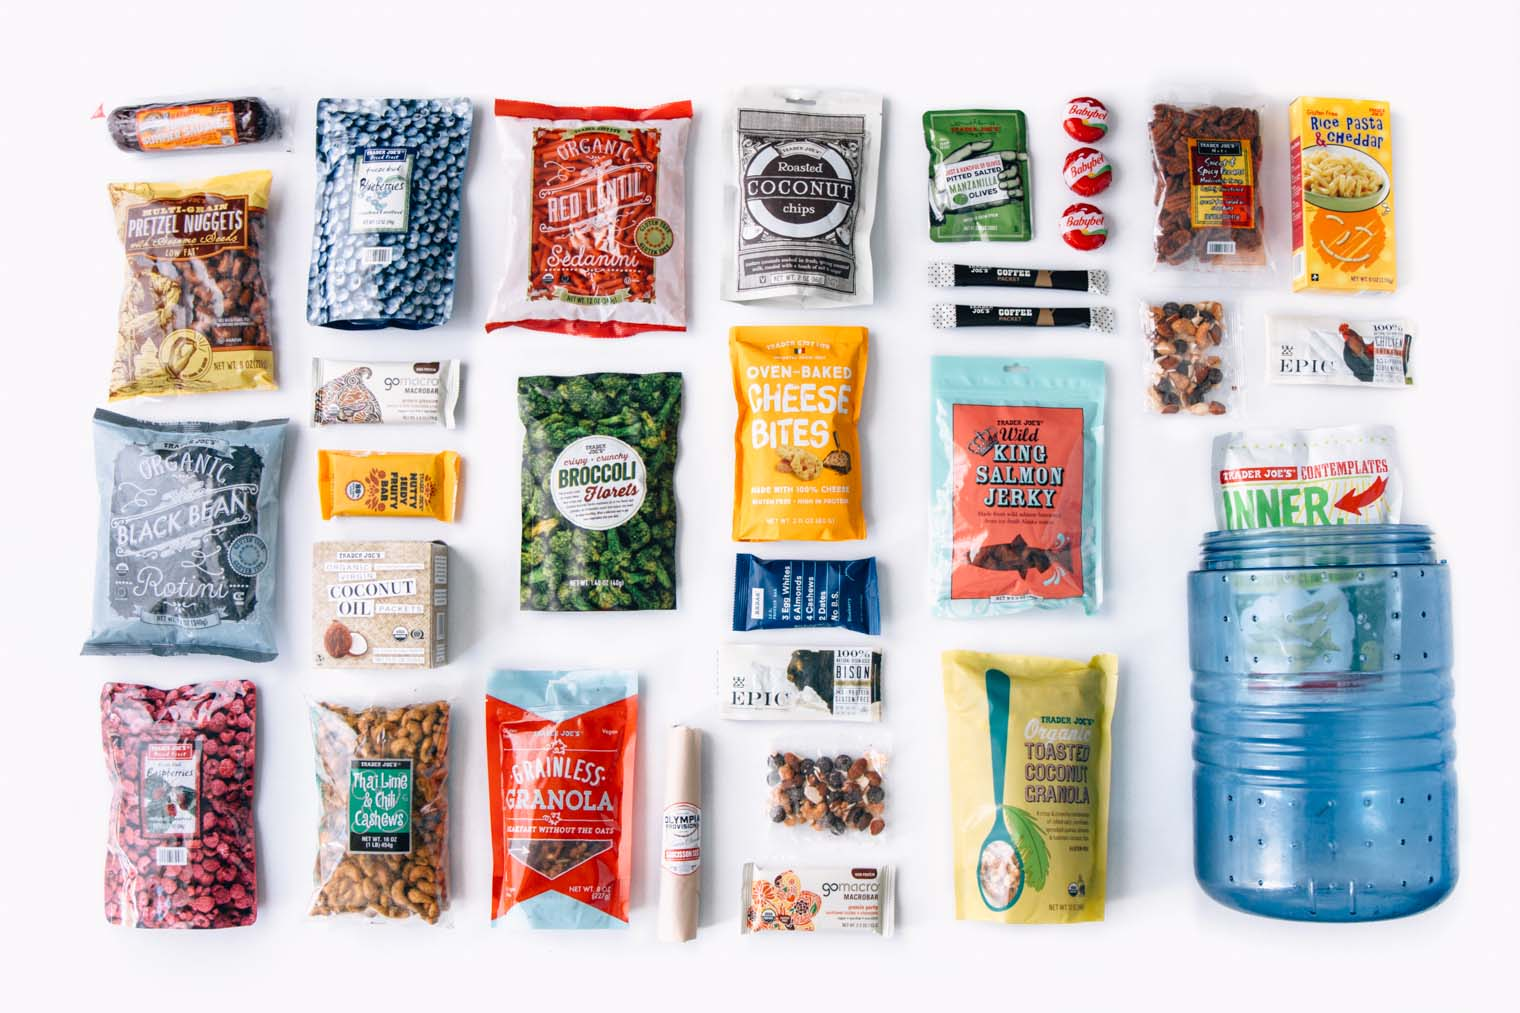 A comprehensive list of backpacking food ideas from Trader Joe's.